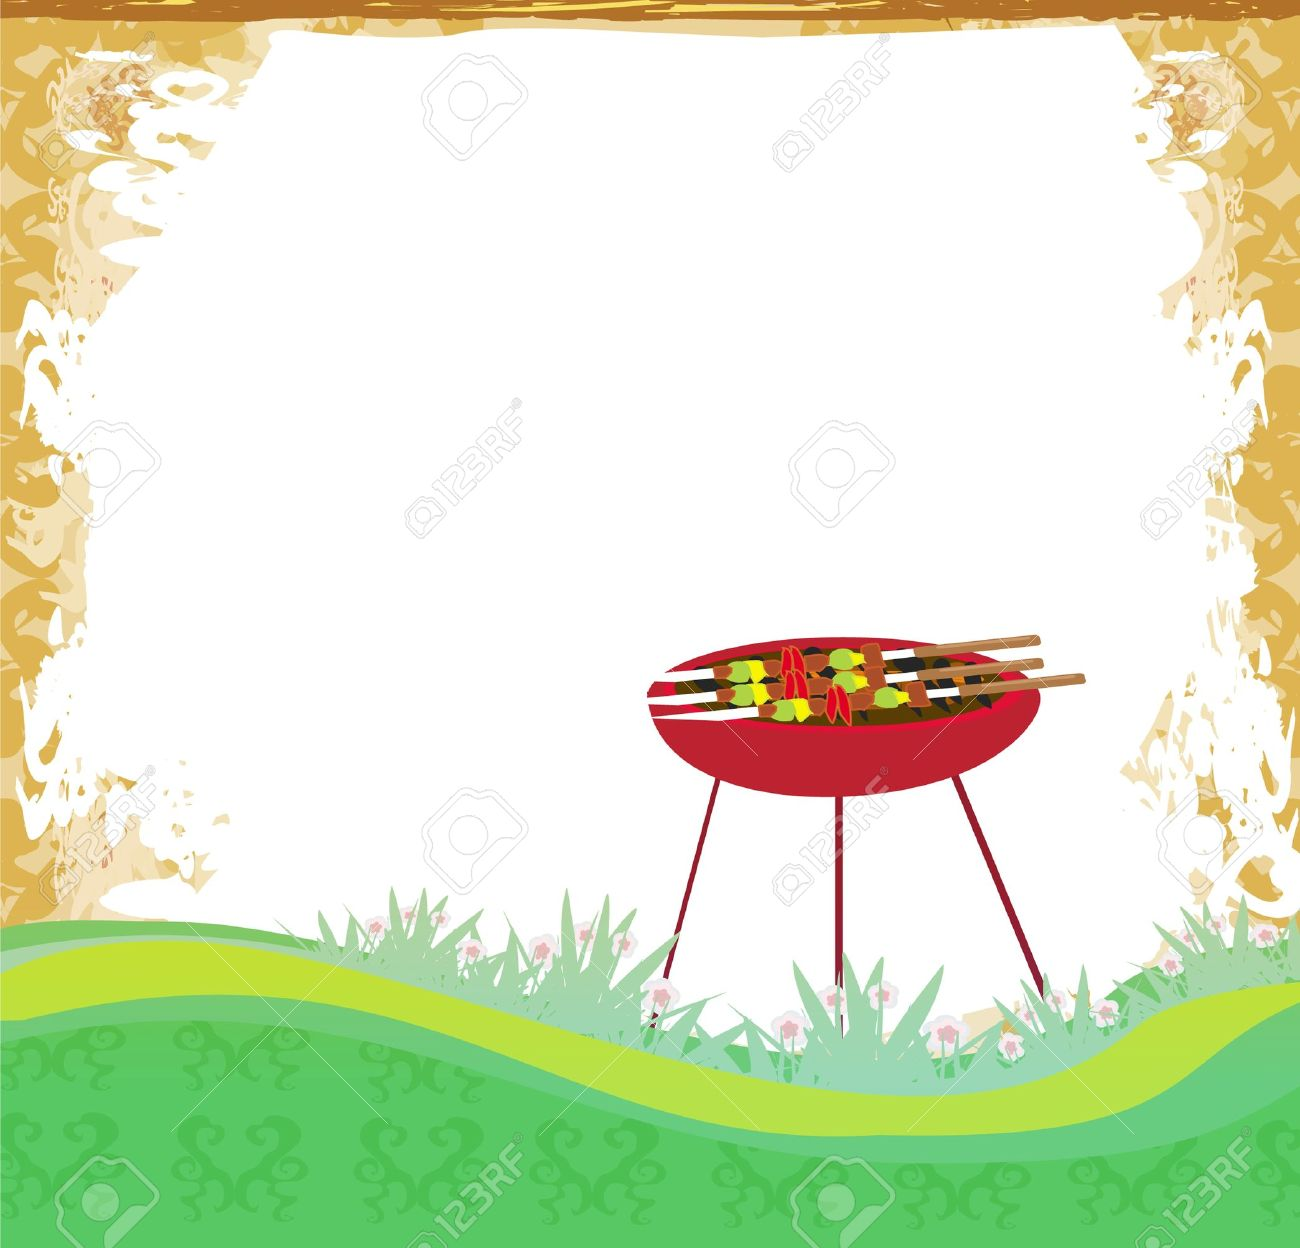 grunge Barbecue Party Invitation Stock Vector - 13423673